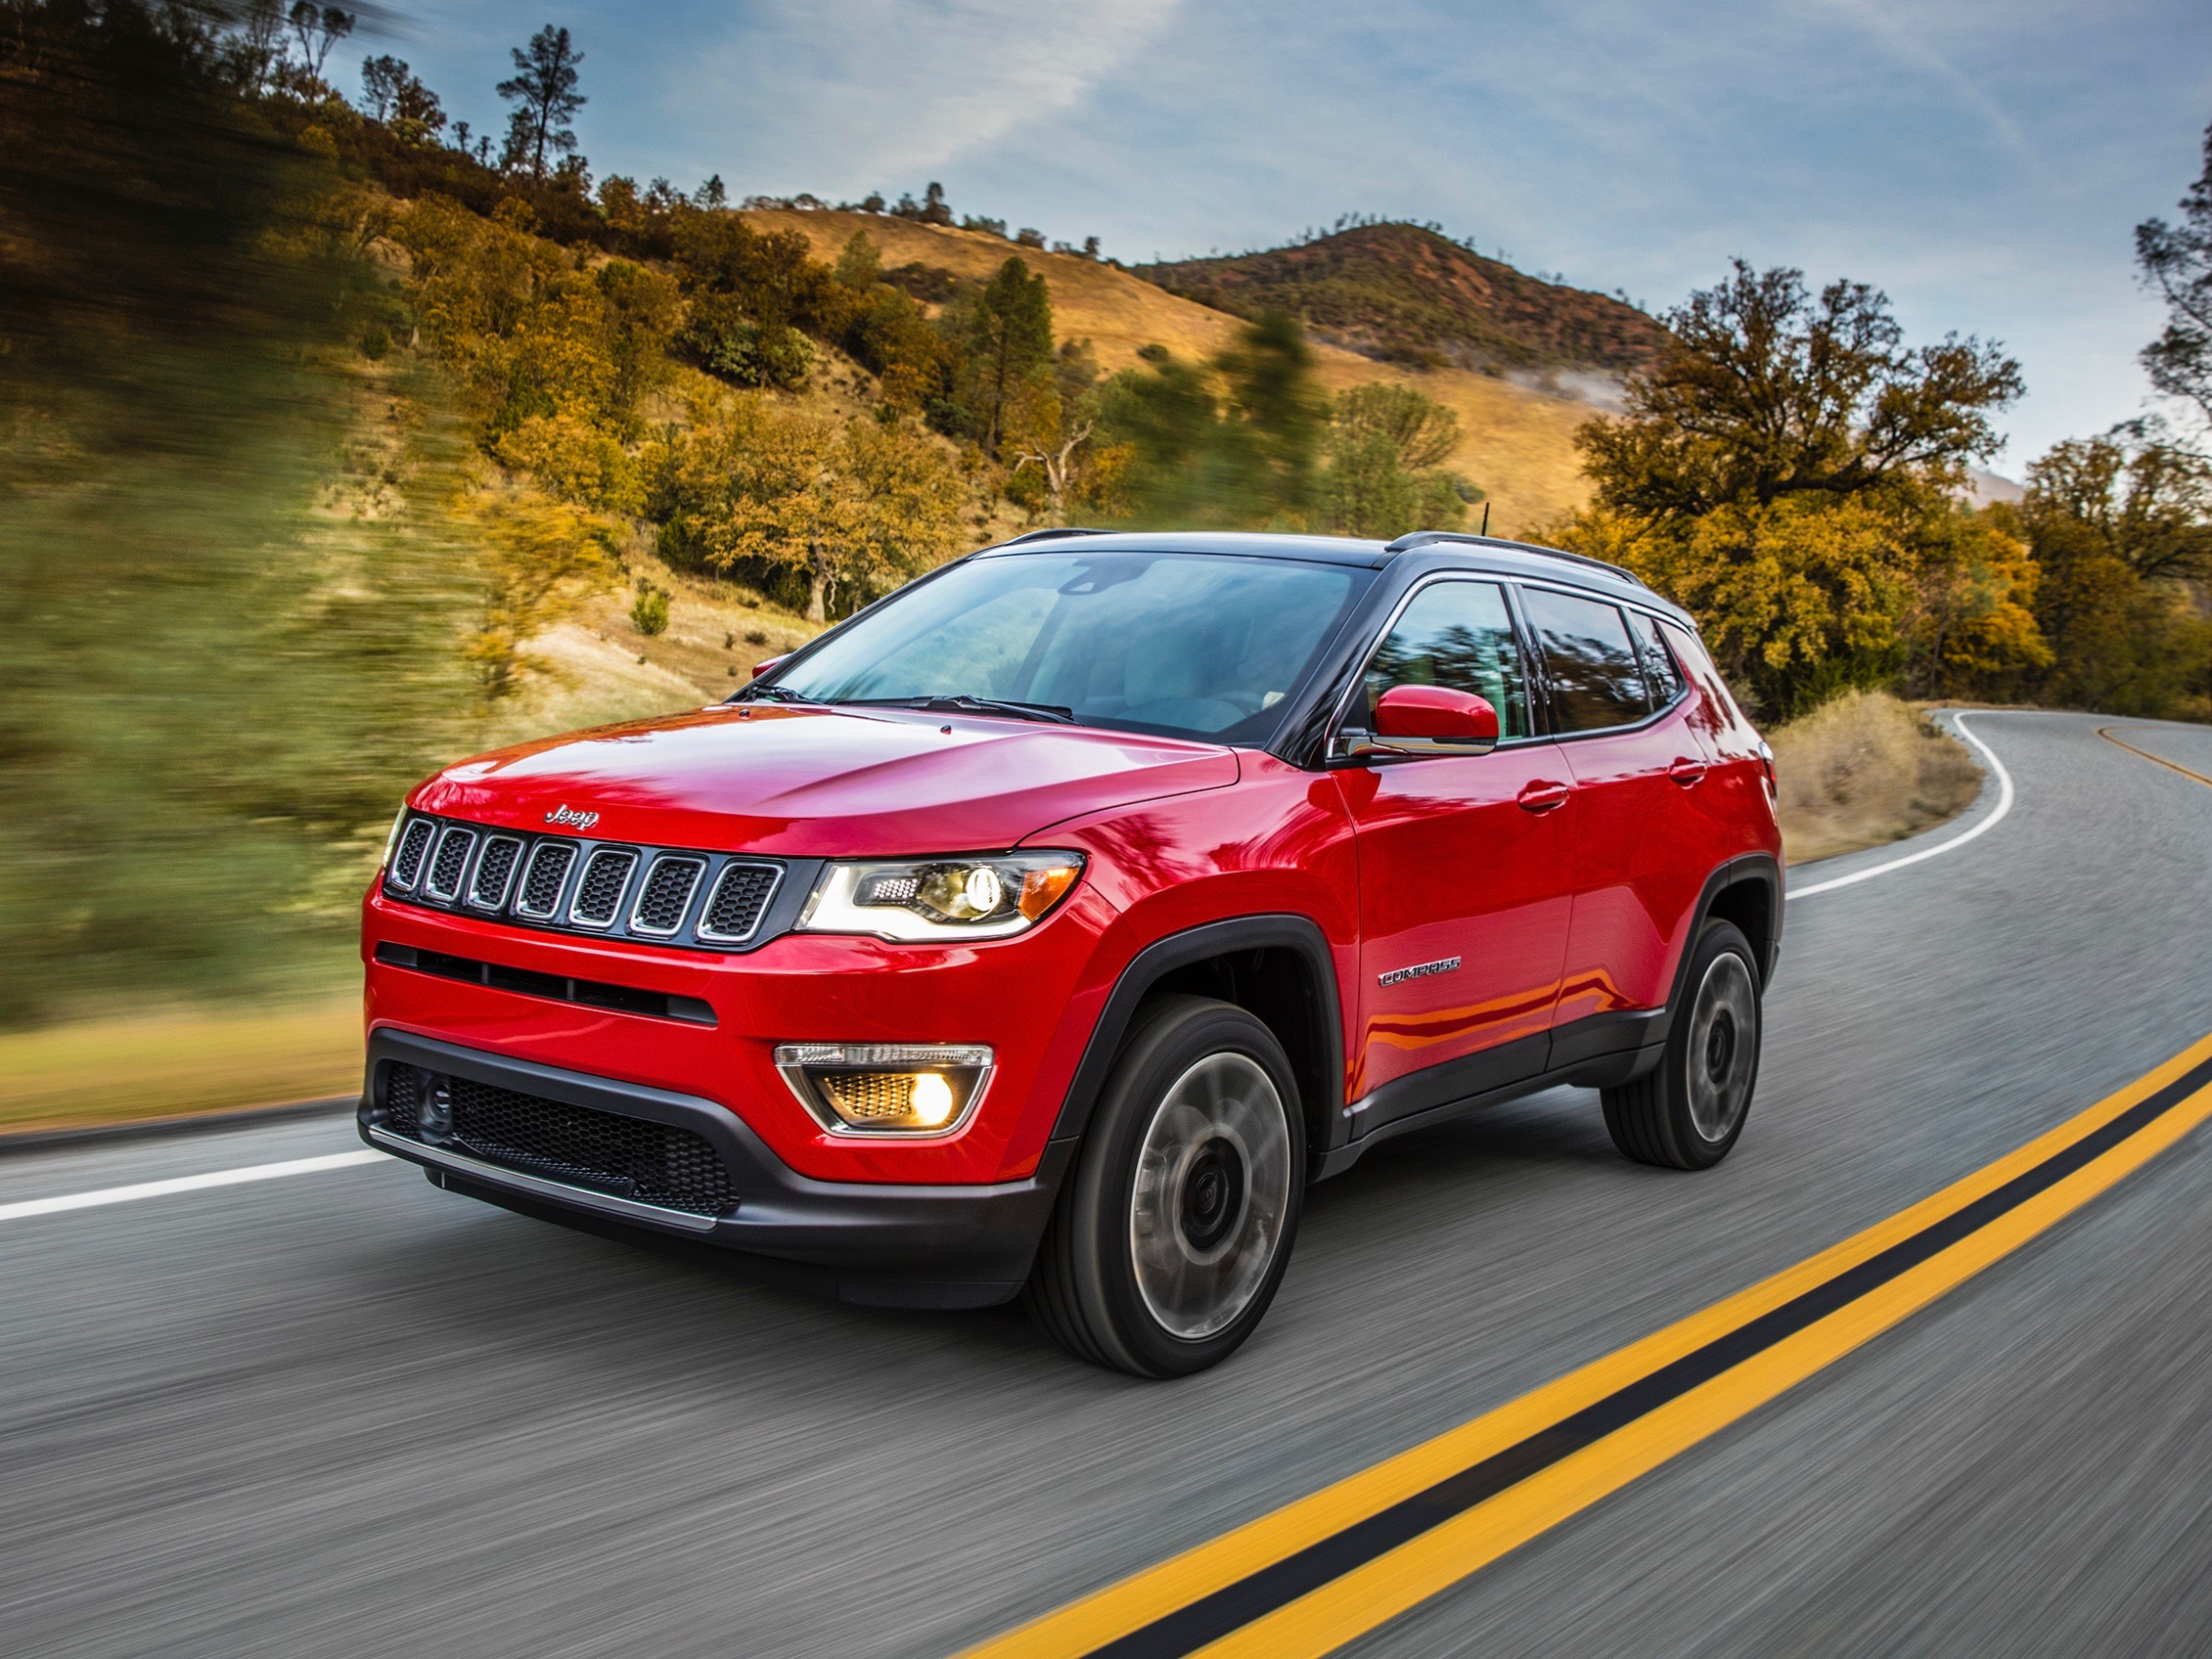 Jeep Compass Reviews | CARFAX Vehicle Research